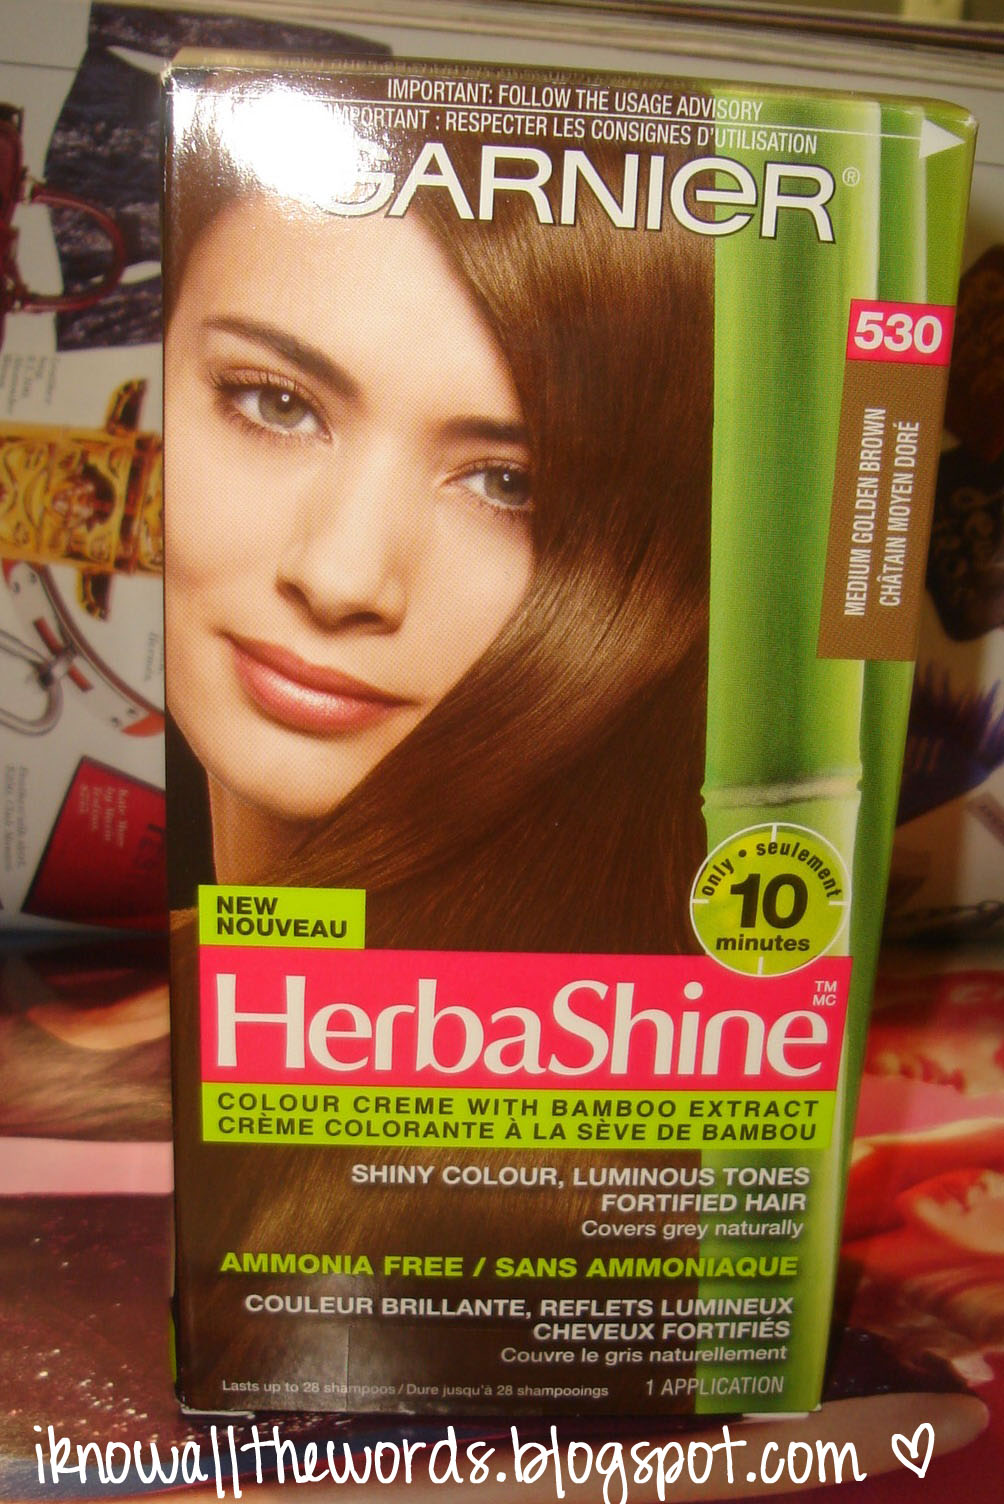 Review Garnier Herbashine Shade 530 Medium Golden Brown I Know